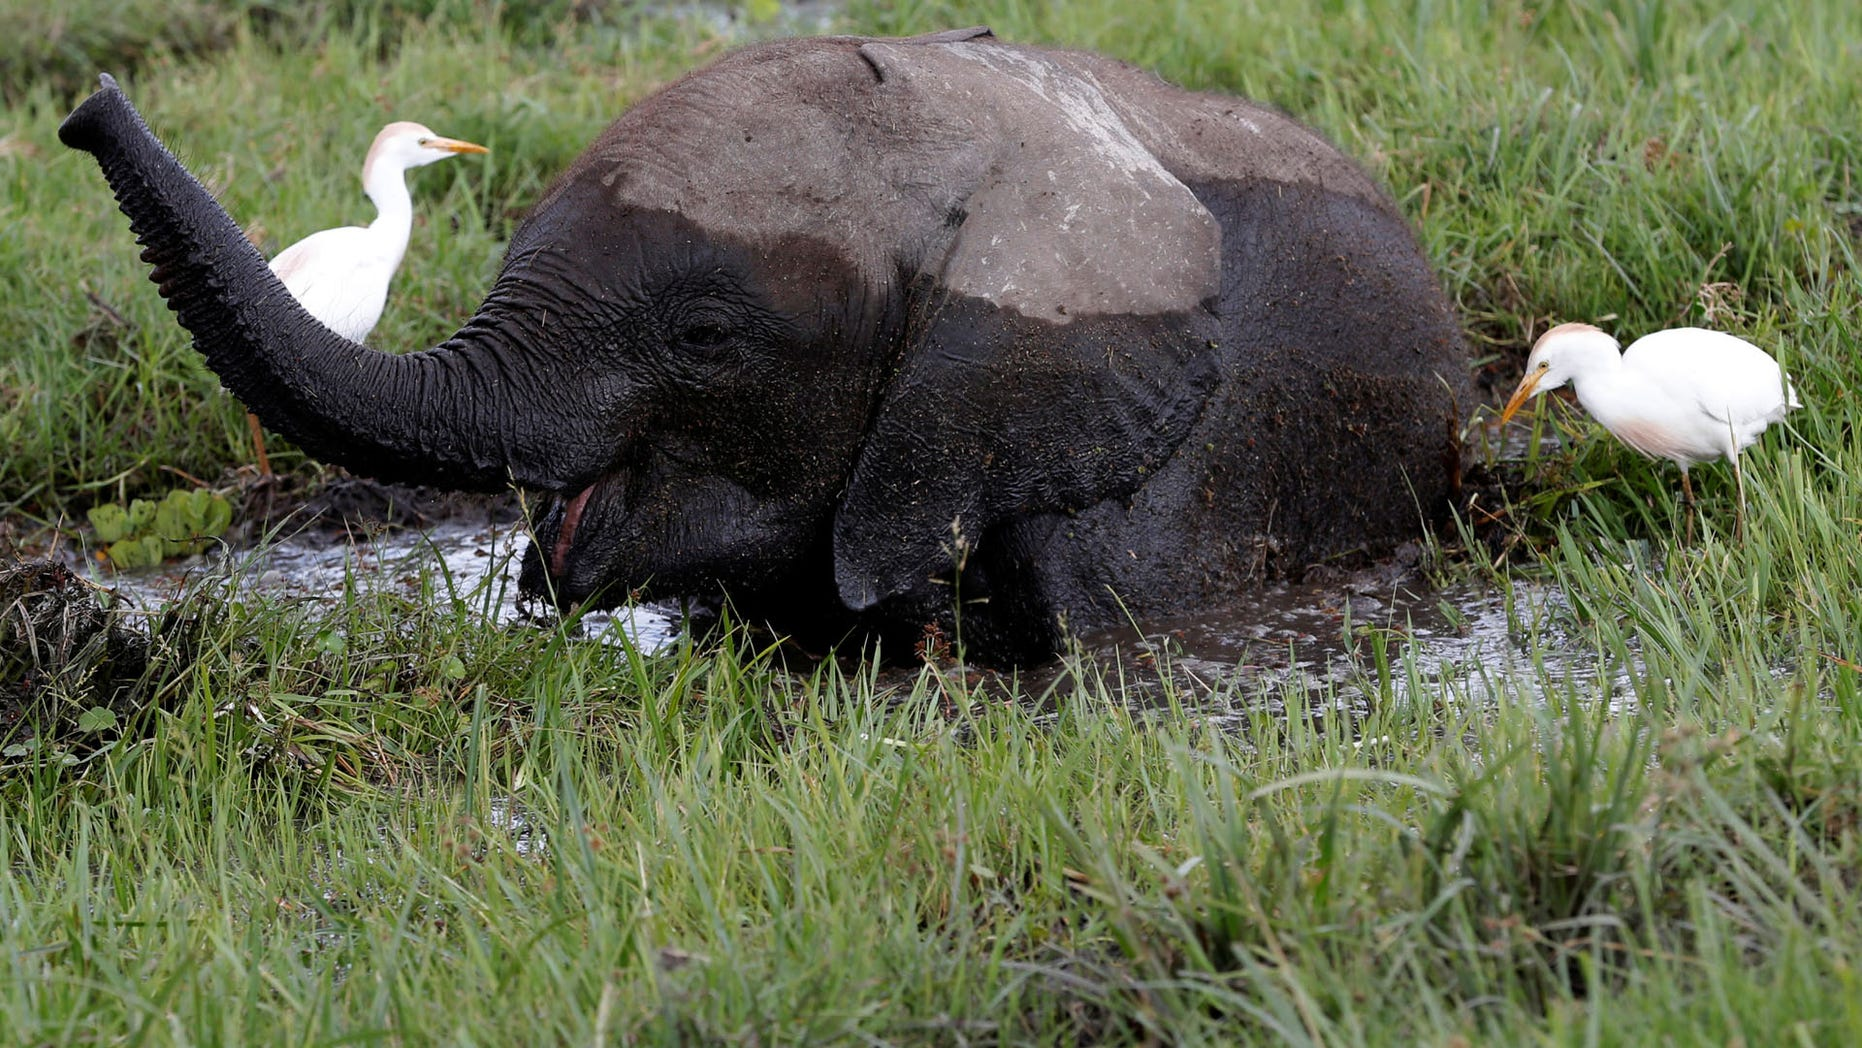 A baby elephant in a swamp.